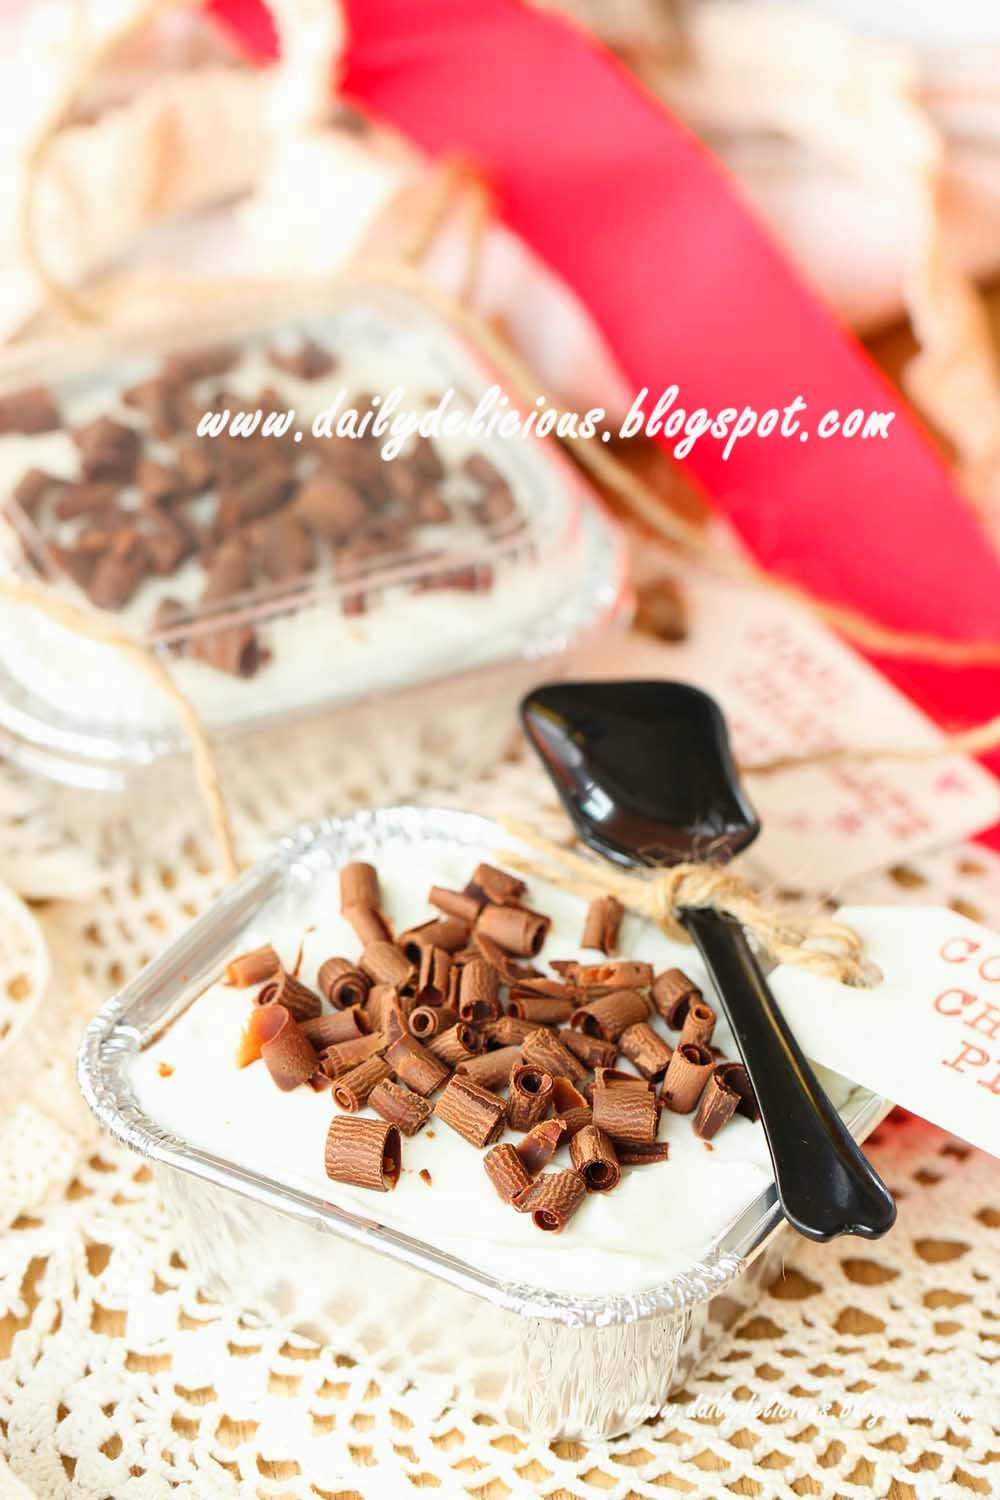 Chocolate Syrup Topping For Cakes